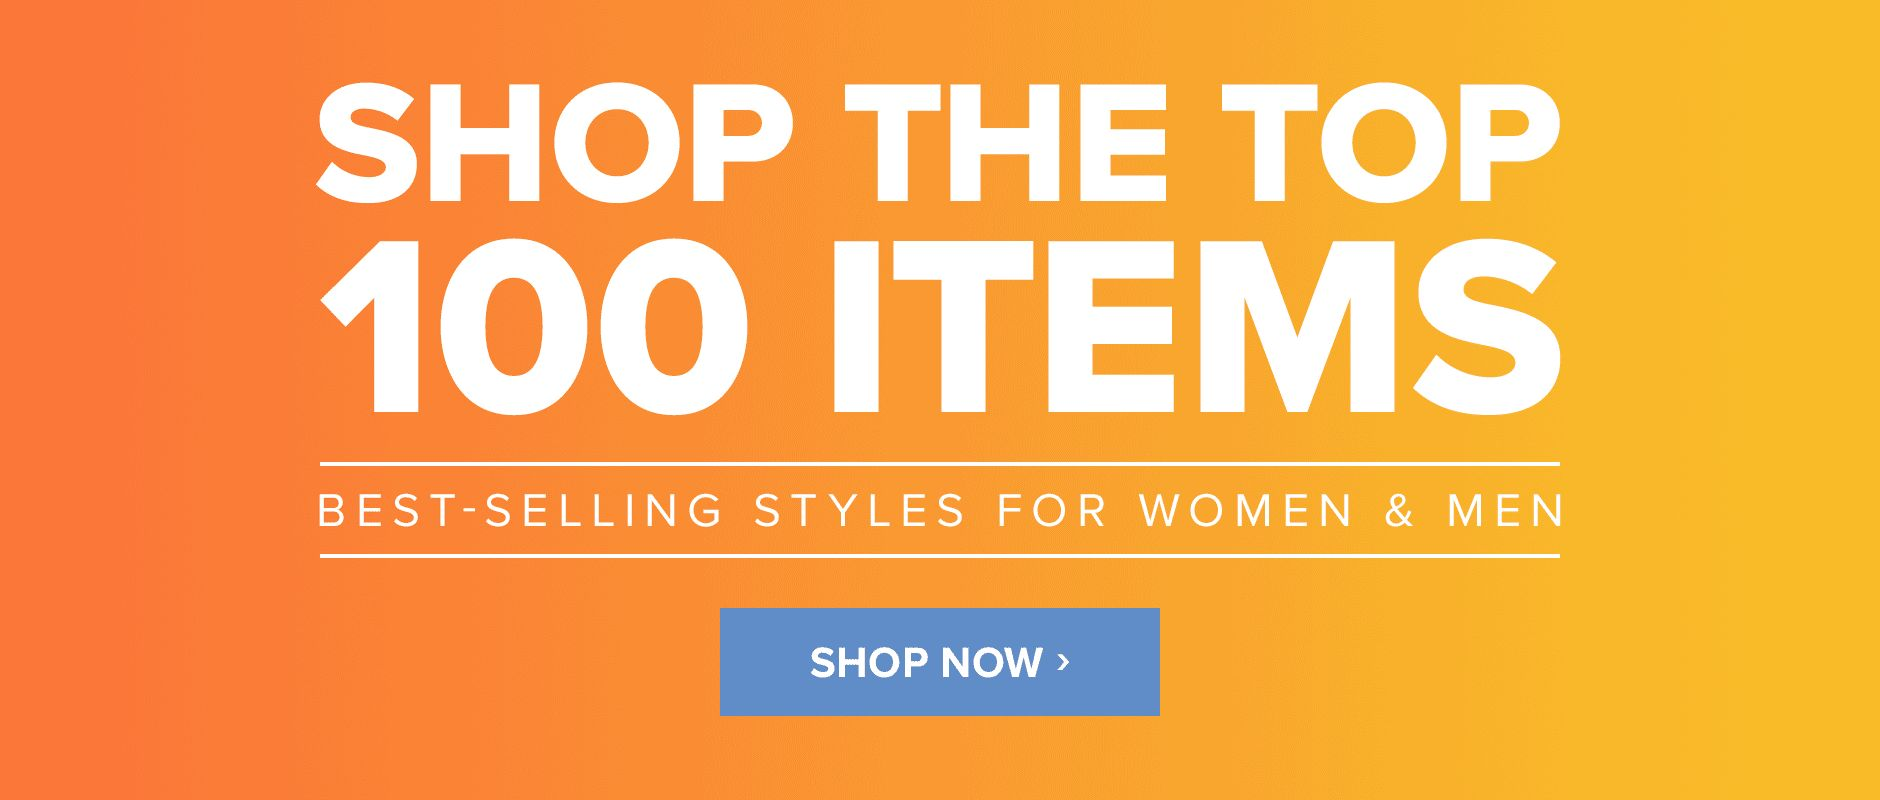 Shop the Top 100 at Footwear etc